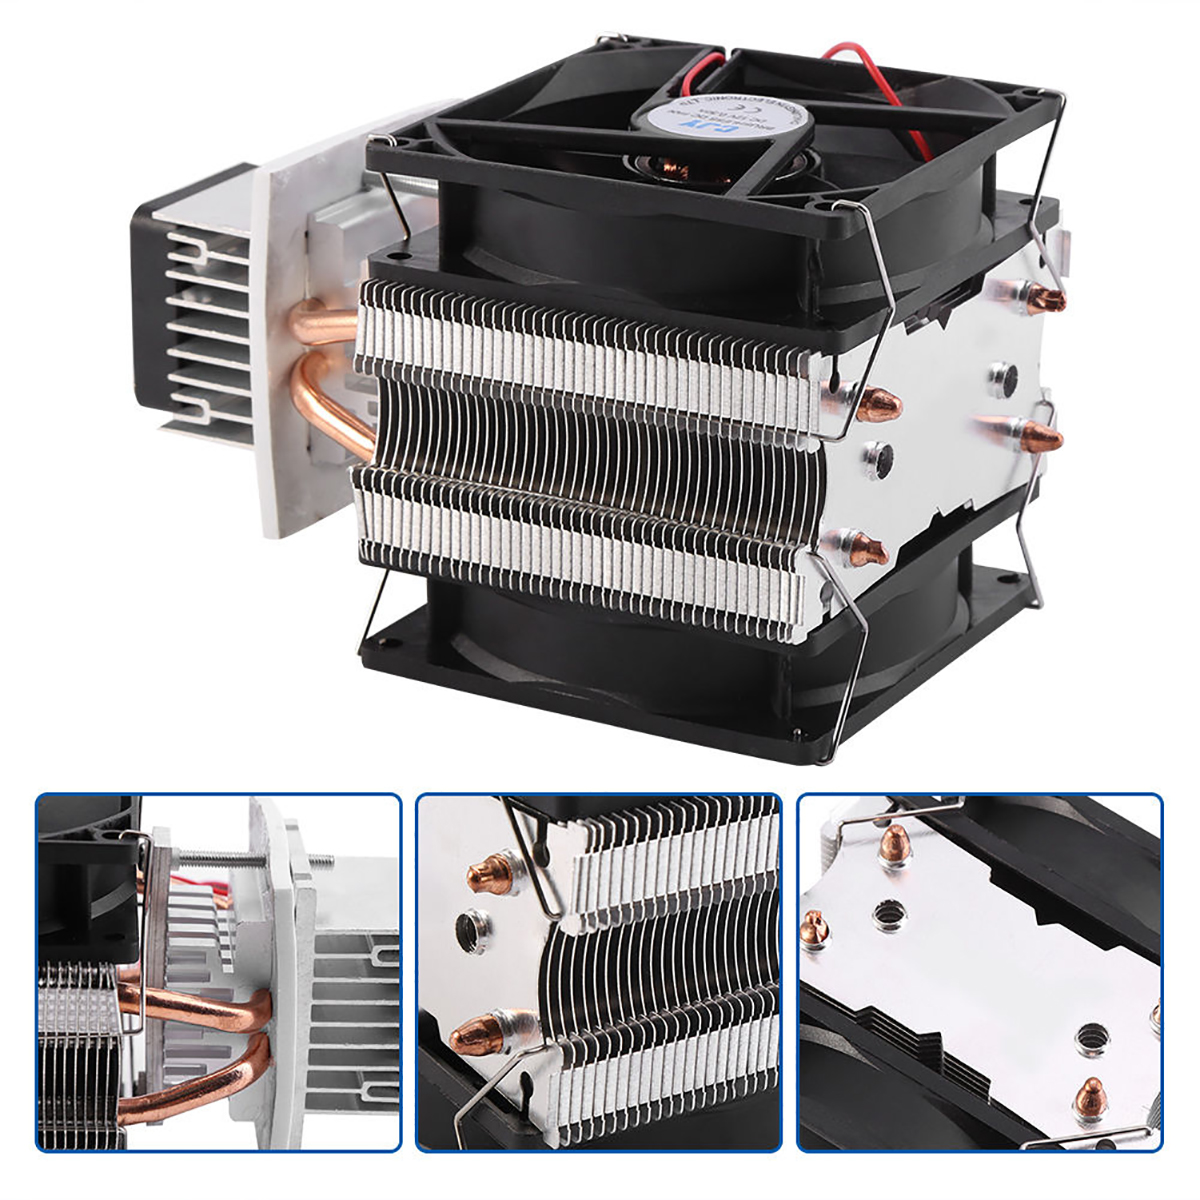 12V 6A Thermoelectric Peltier Semiconductor Cooler Refrigeration Cooling System Kit Cooler Fan For Air Cooling Mayitr practical 12v 6a thermoelectric peltier semiconductor cooler refrigeration cooling system diy kit fan 175 100 98 mm mayitr